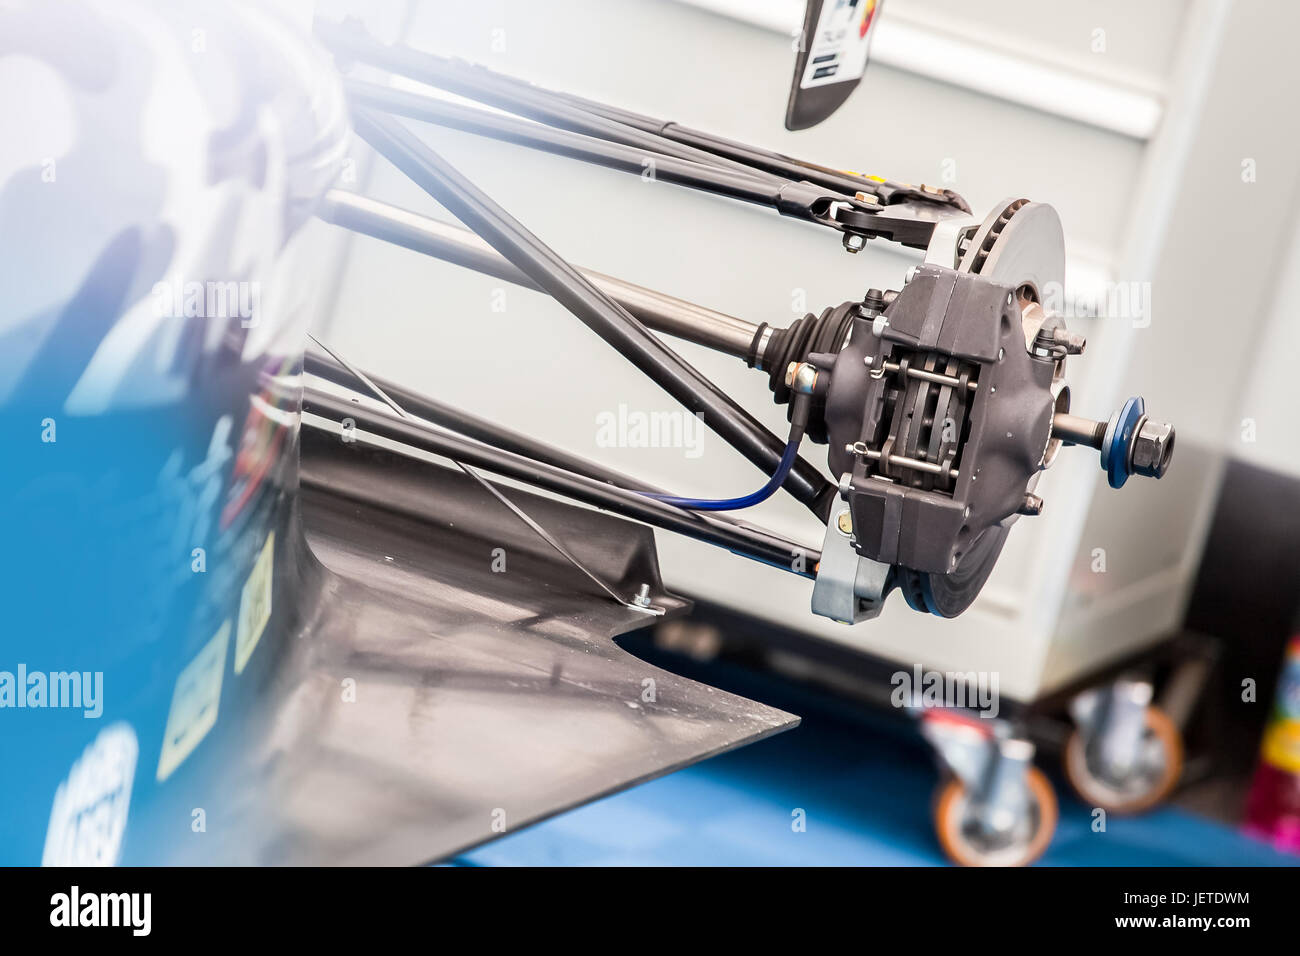 Internal parts of vehicle Stock Photo: 146825888 - Alamy